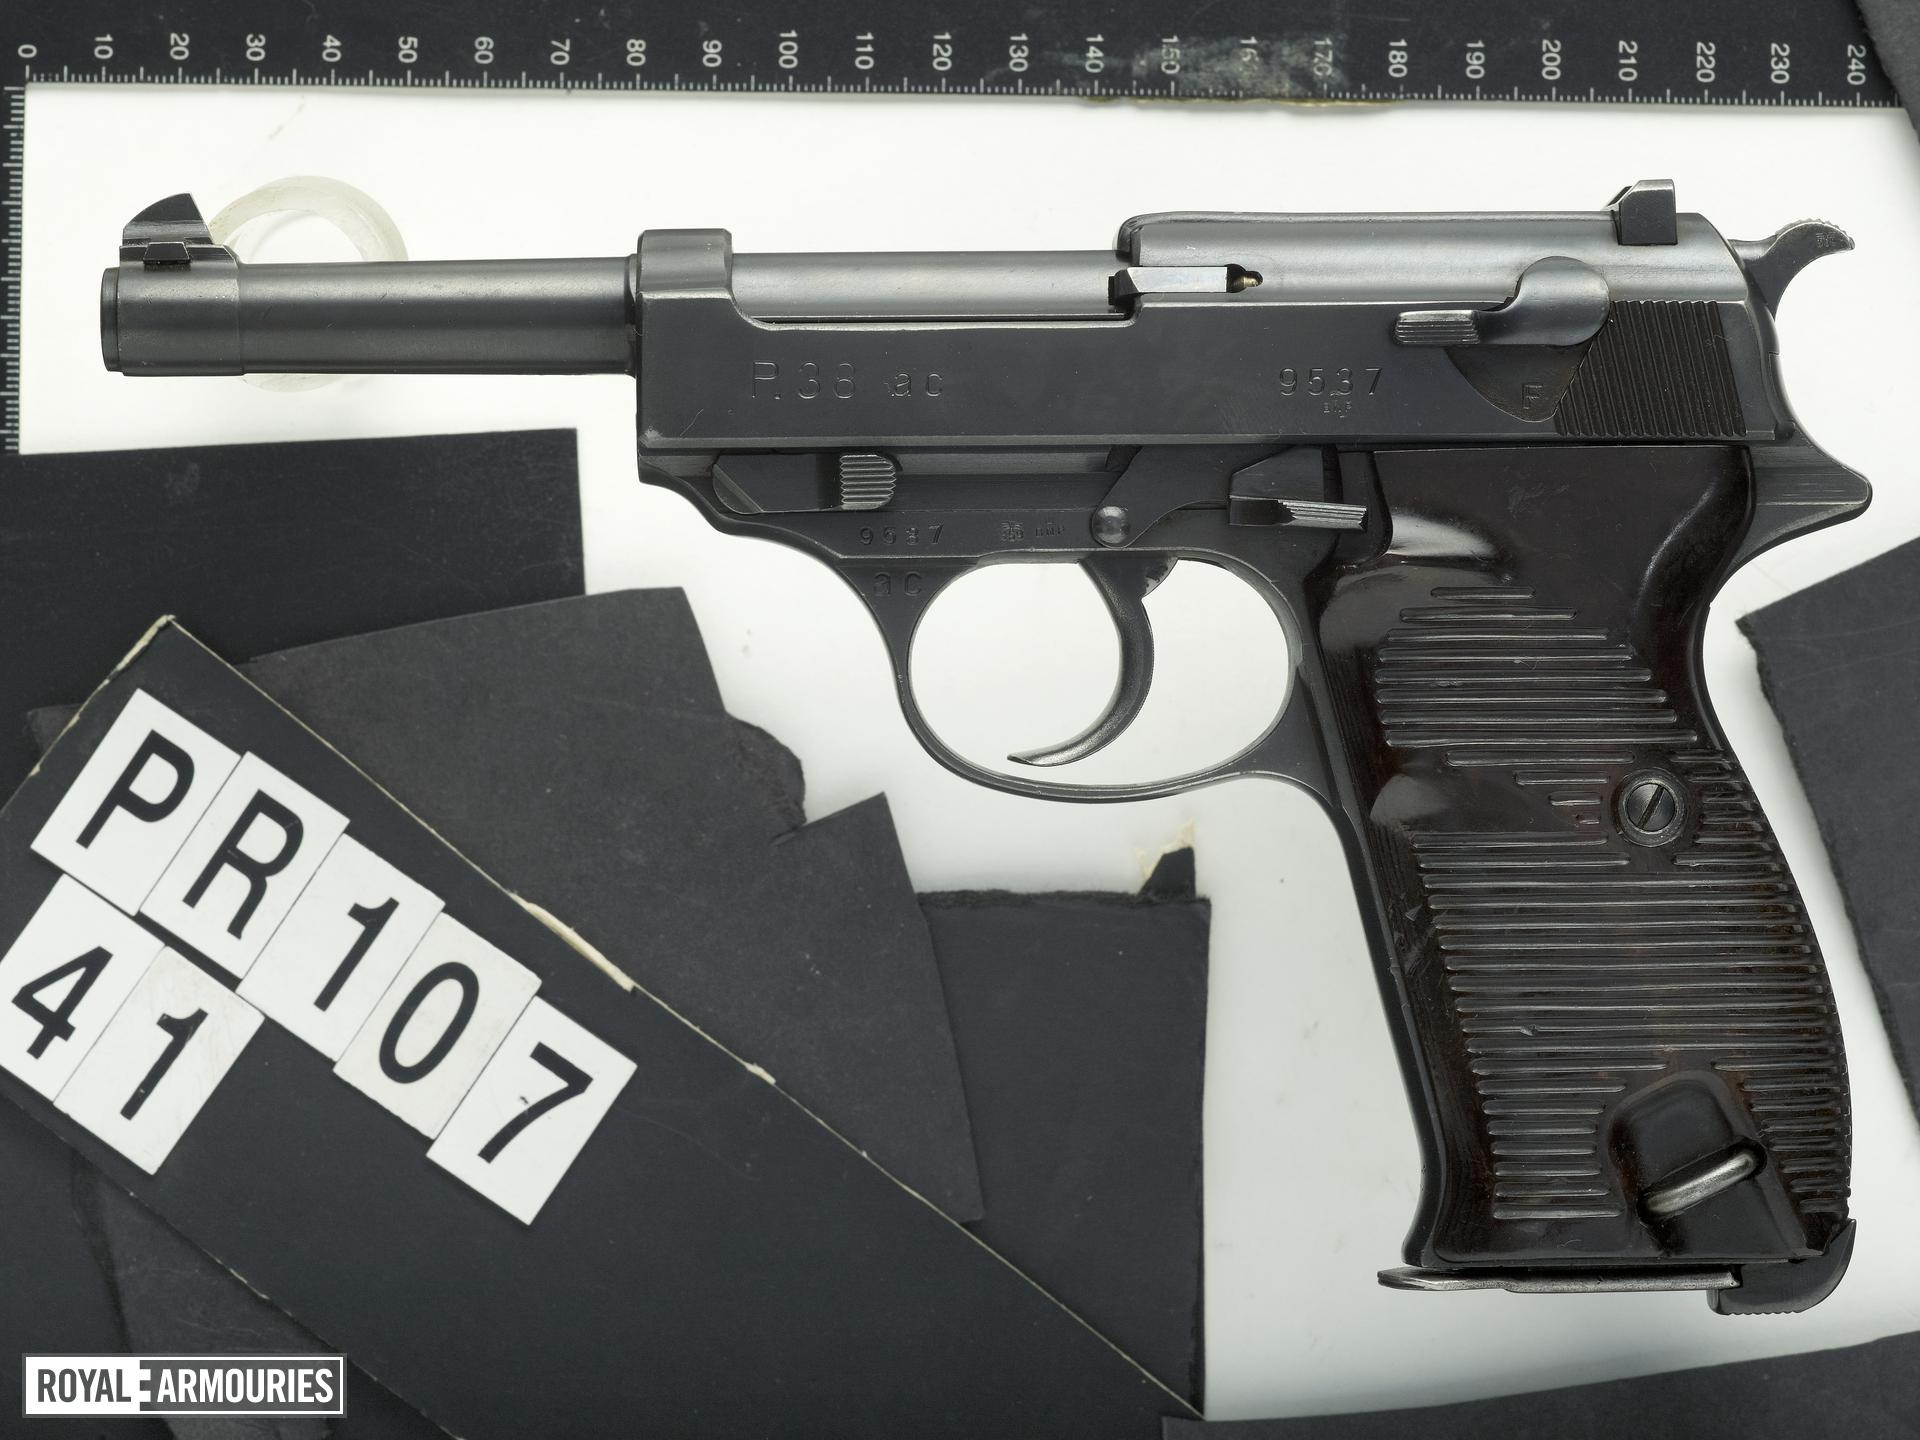 Centrefire self-loading military pistol - Walther Model P.38 Military contract Walther P.38 with the Walther code 'ac'. Only 2550 examples carry this code.